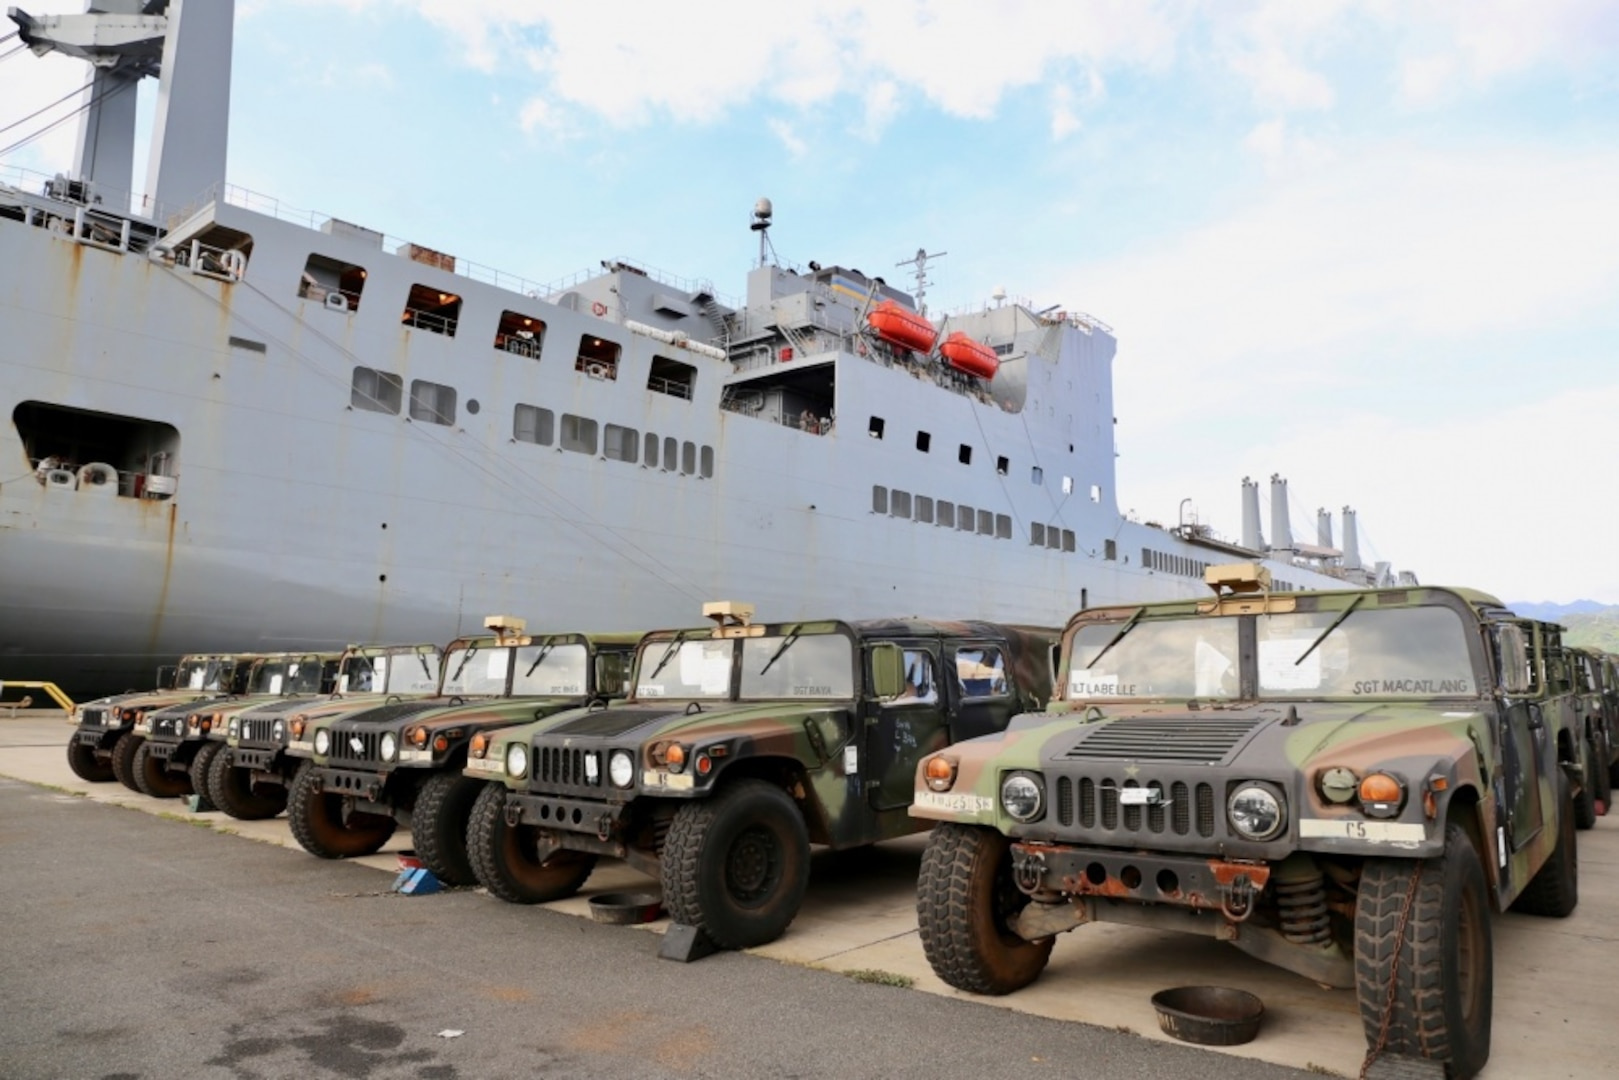 NAVSUP FLC Pearl Harbor Supports DoD's Transportation Management System Prototype Deploying Army Cargo